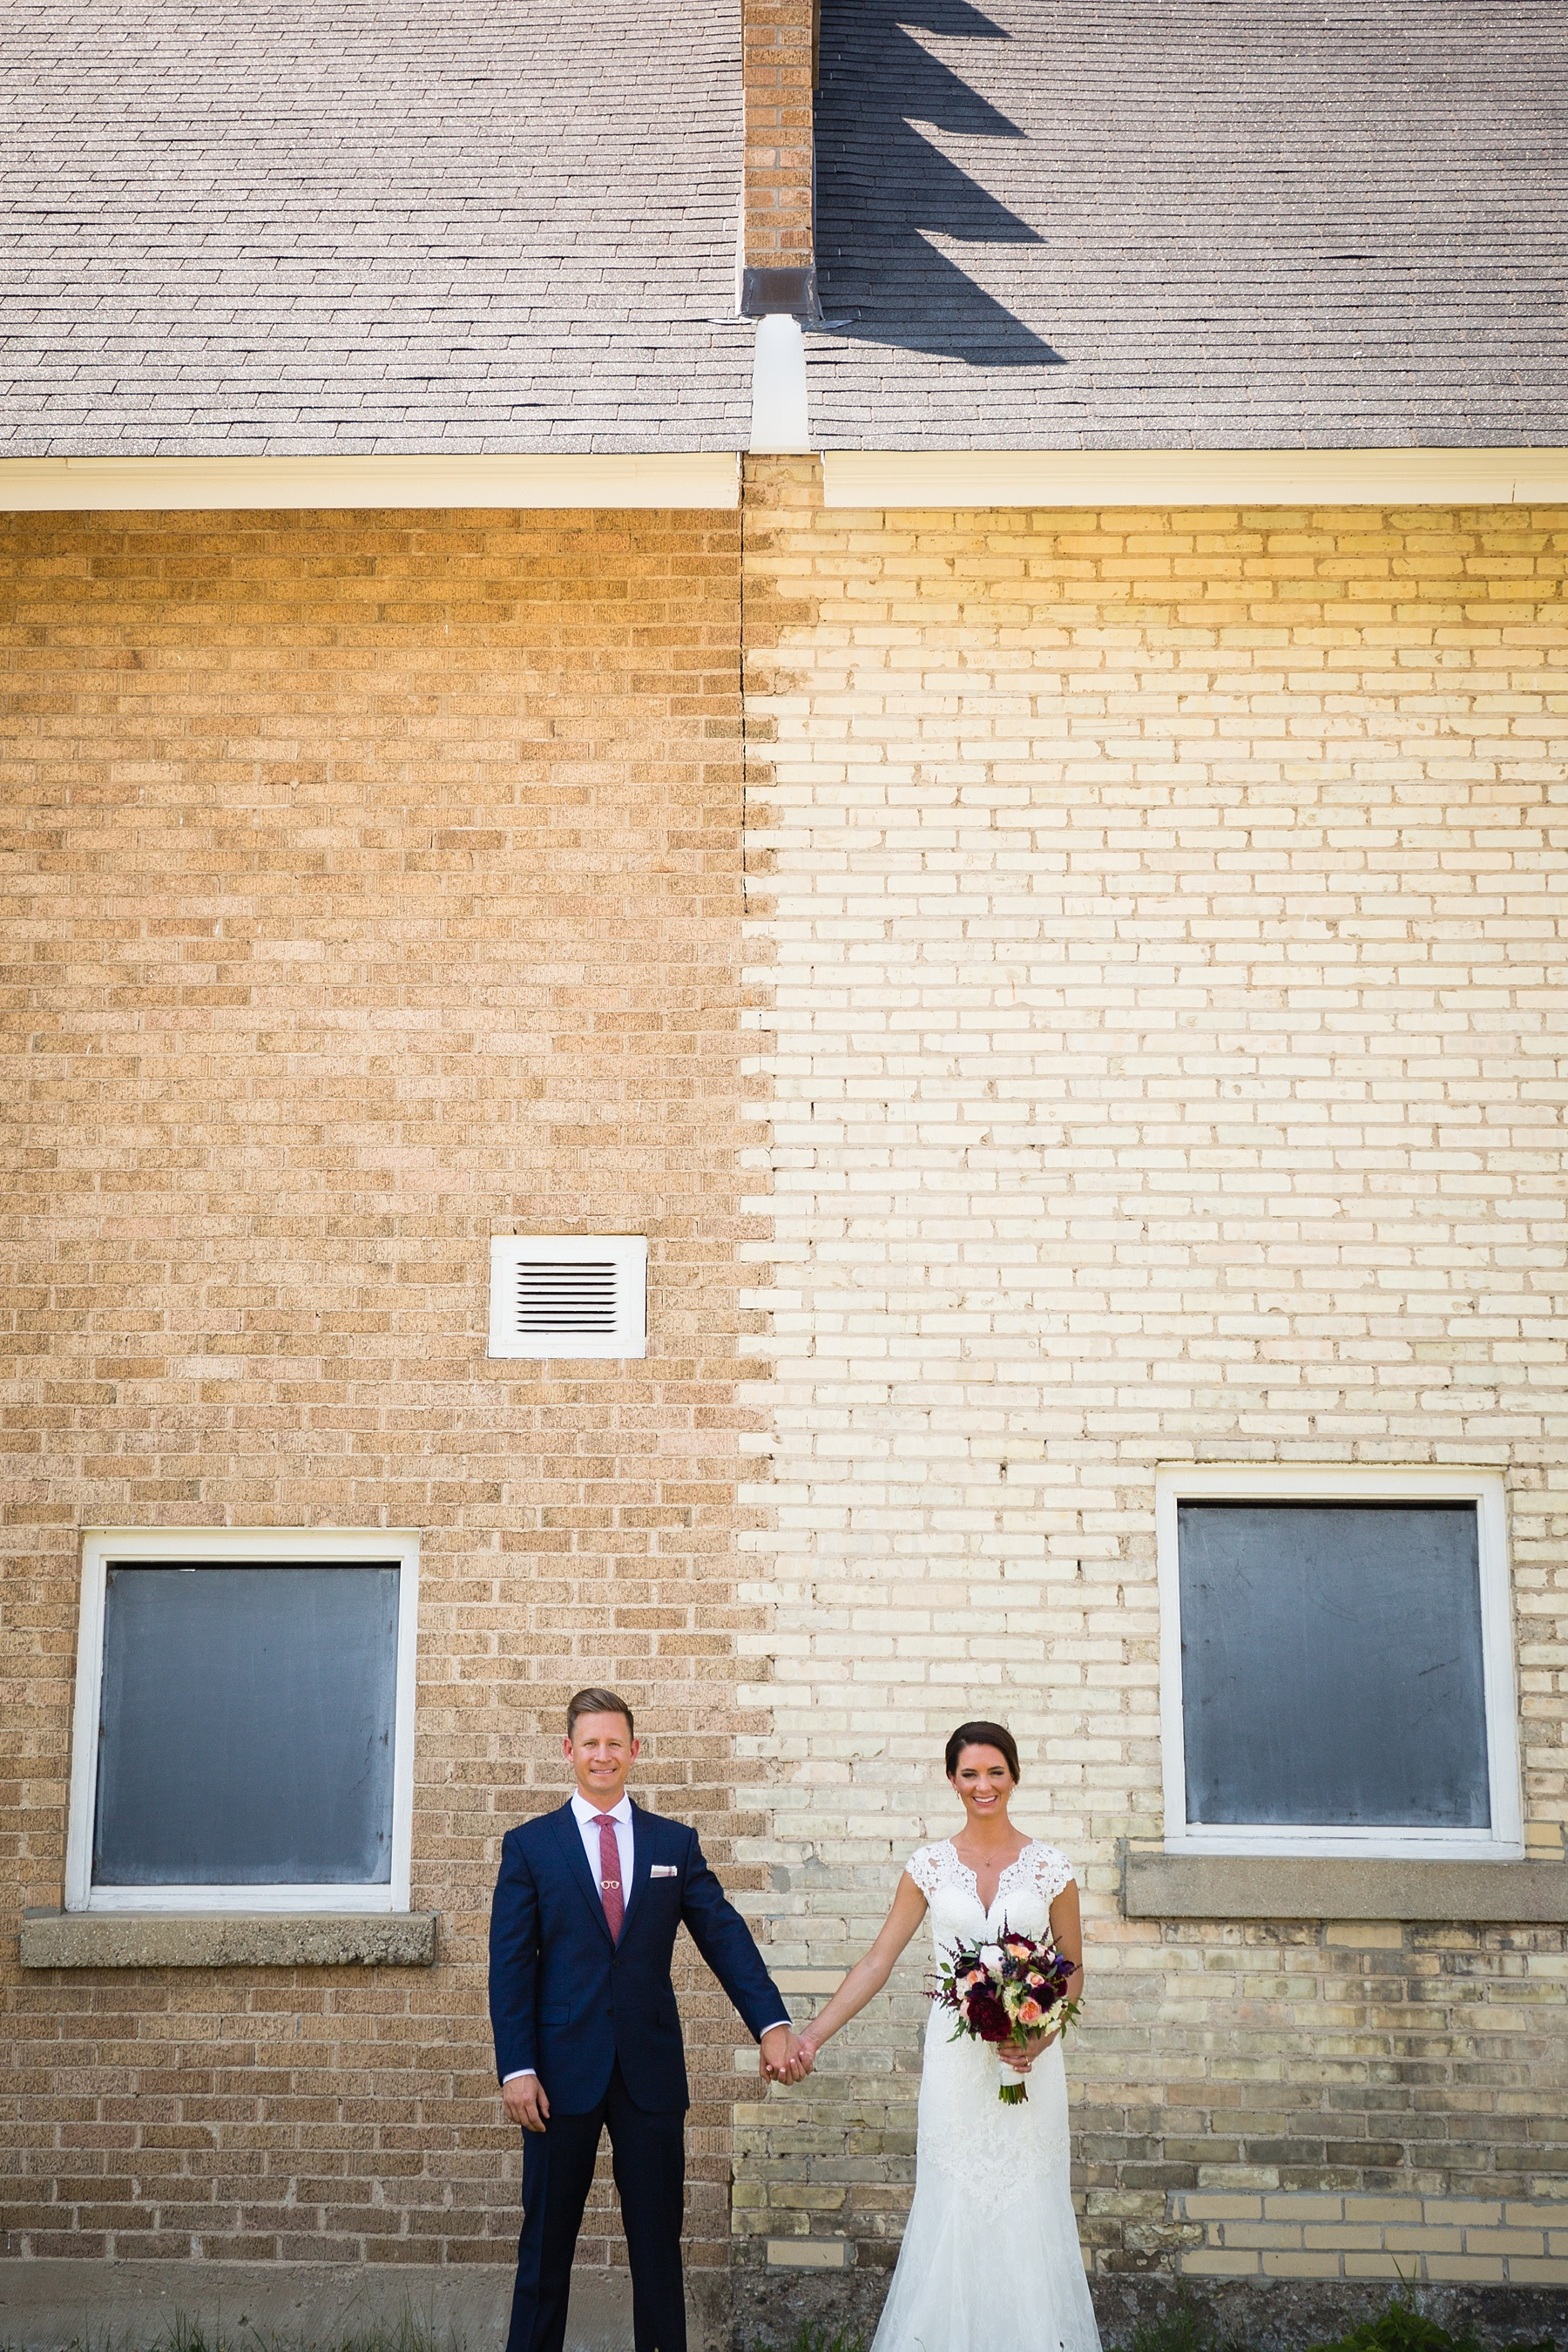 Brandon_Shafer_Photography_Traverse_City_Wedding_0018.jpg